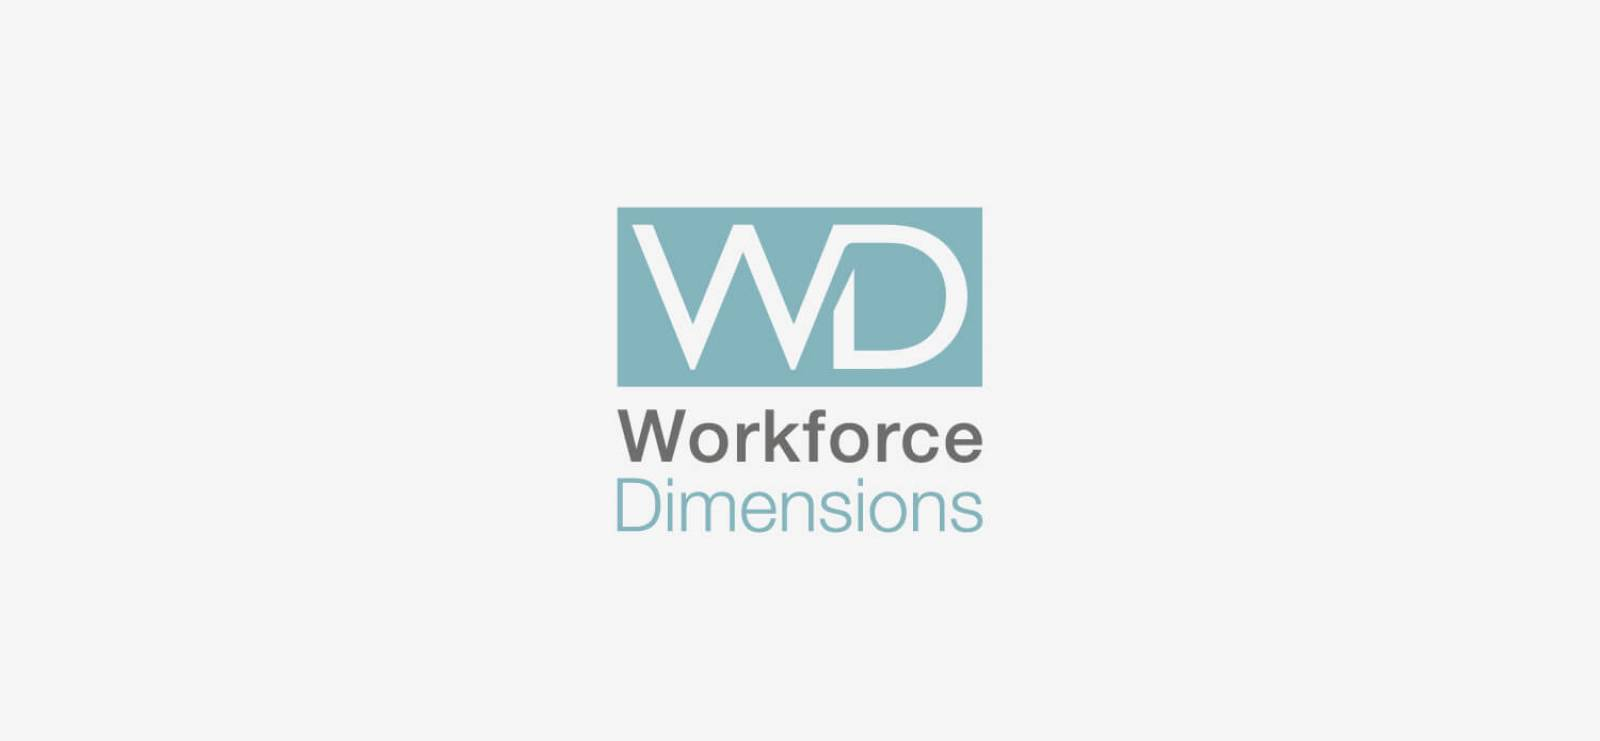 Workforce-dimensions-logo-identity-design-agency-graphic-design-canterbury.jpg